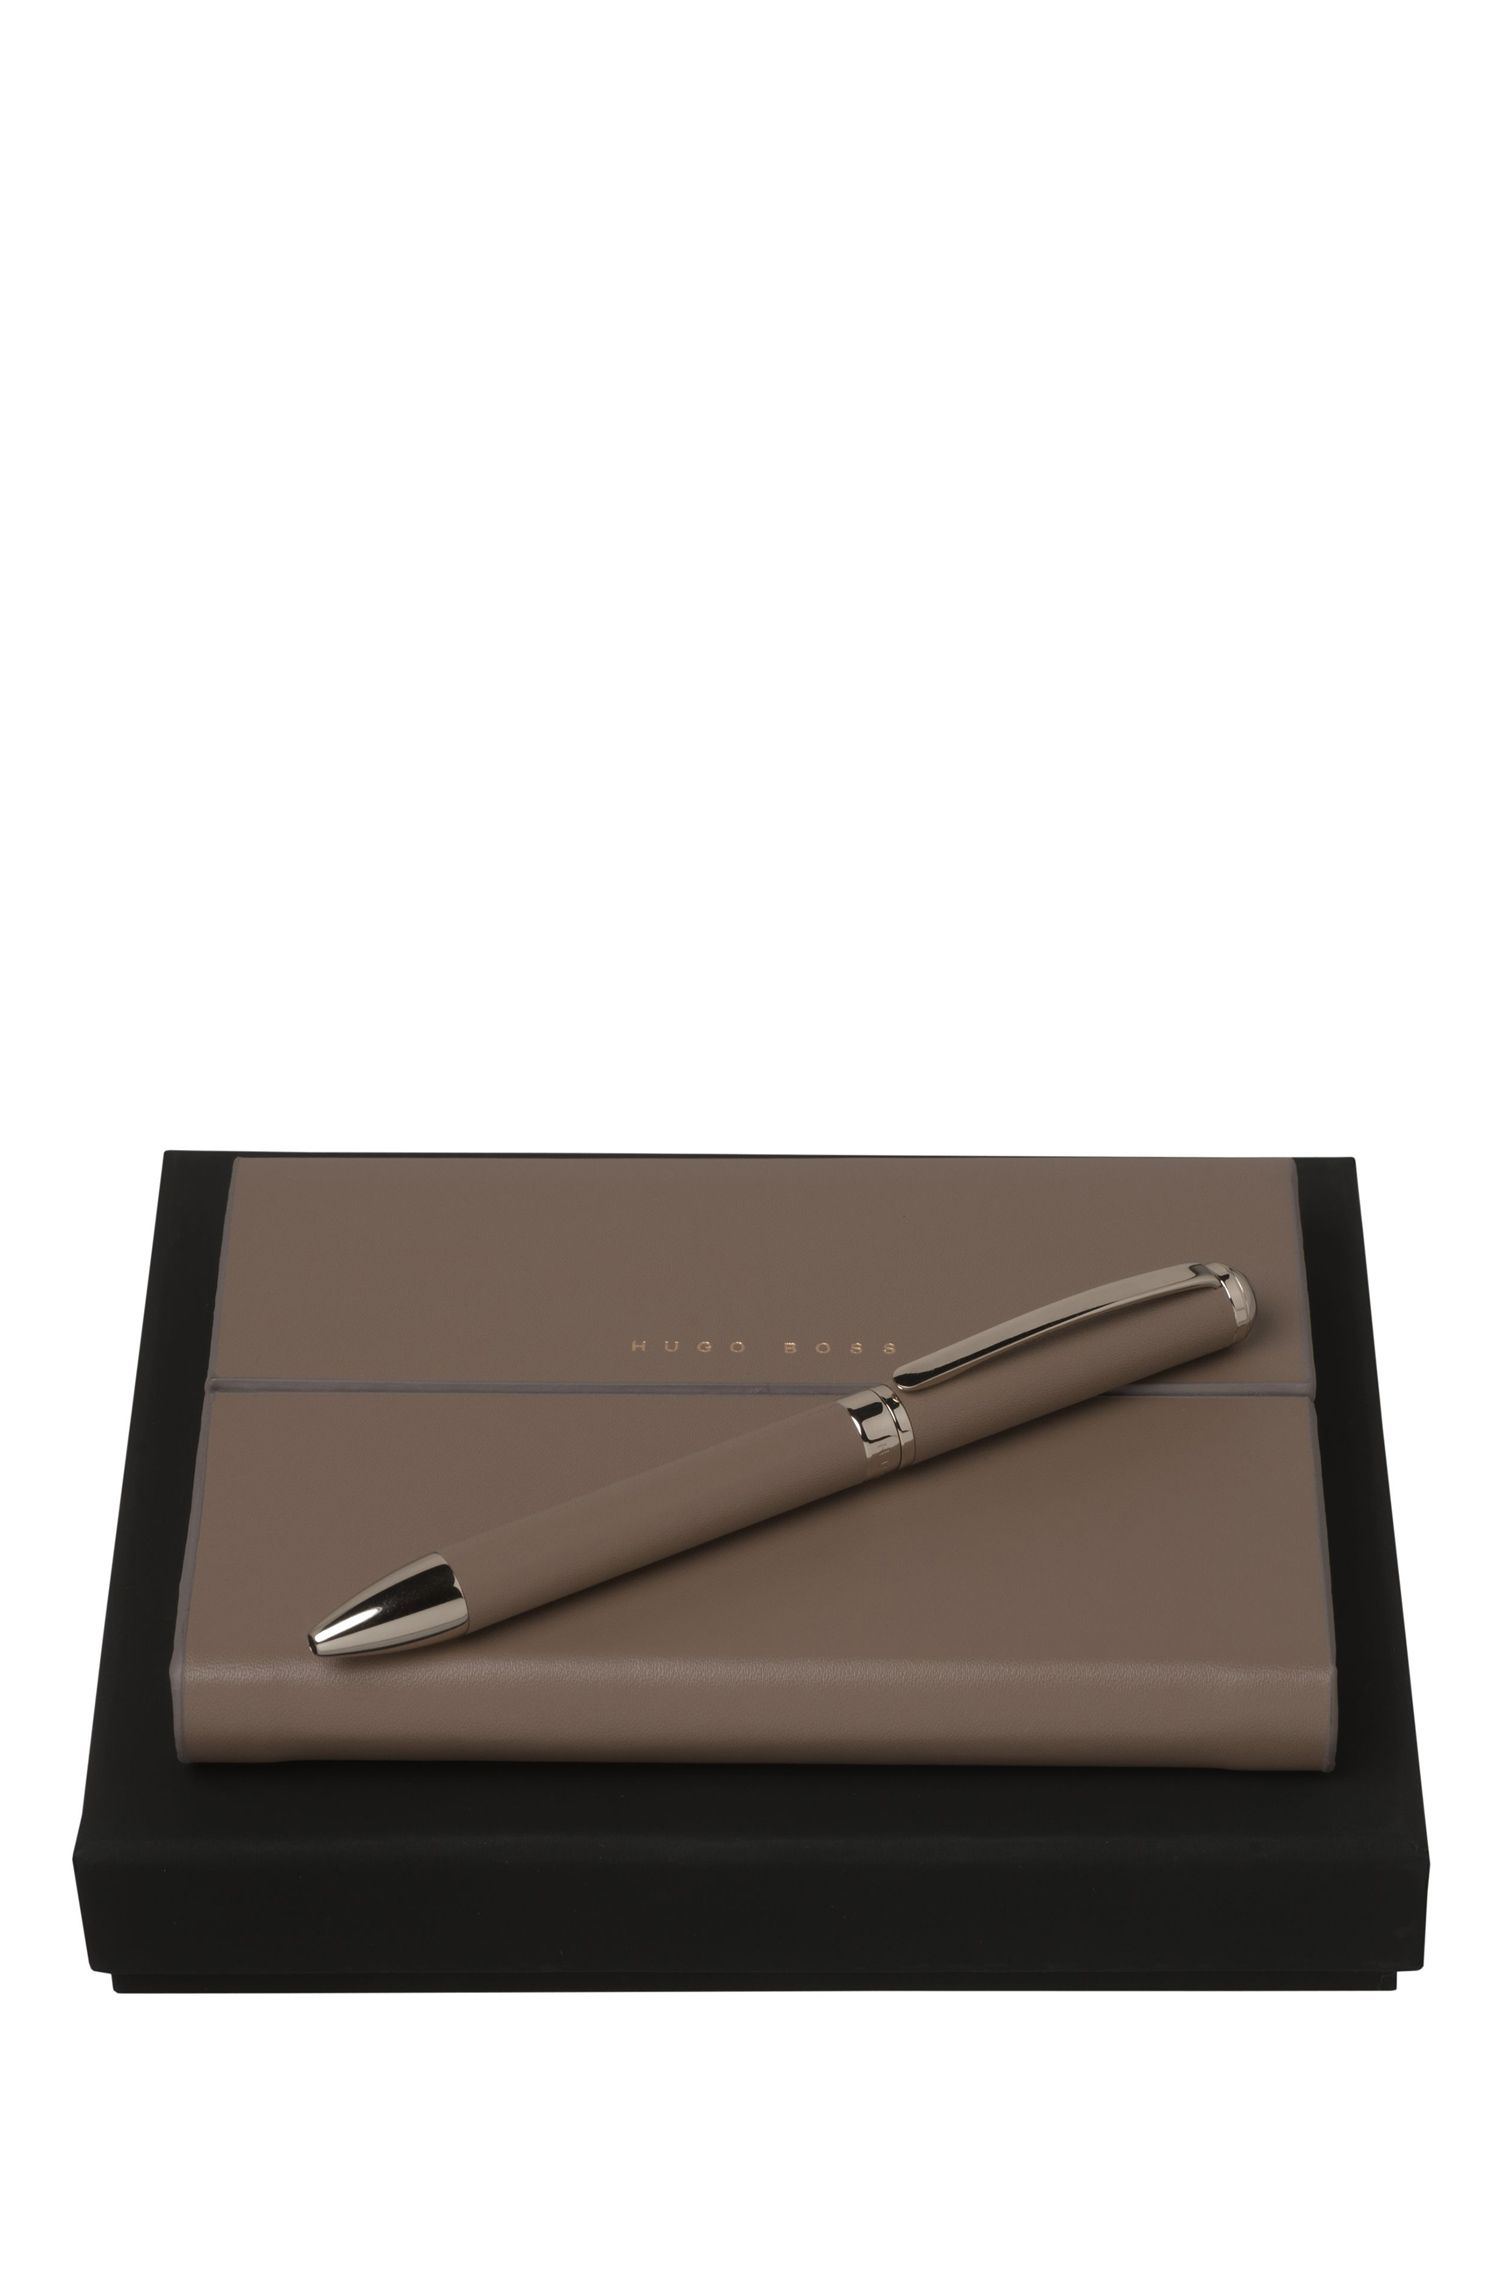 Verse Ballpoint Pen & Notebook Set | HPBM606Z, Assorted-Pre-Pack